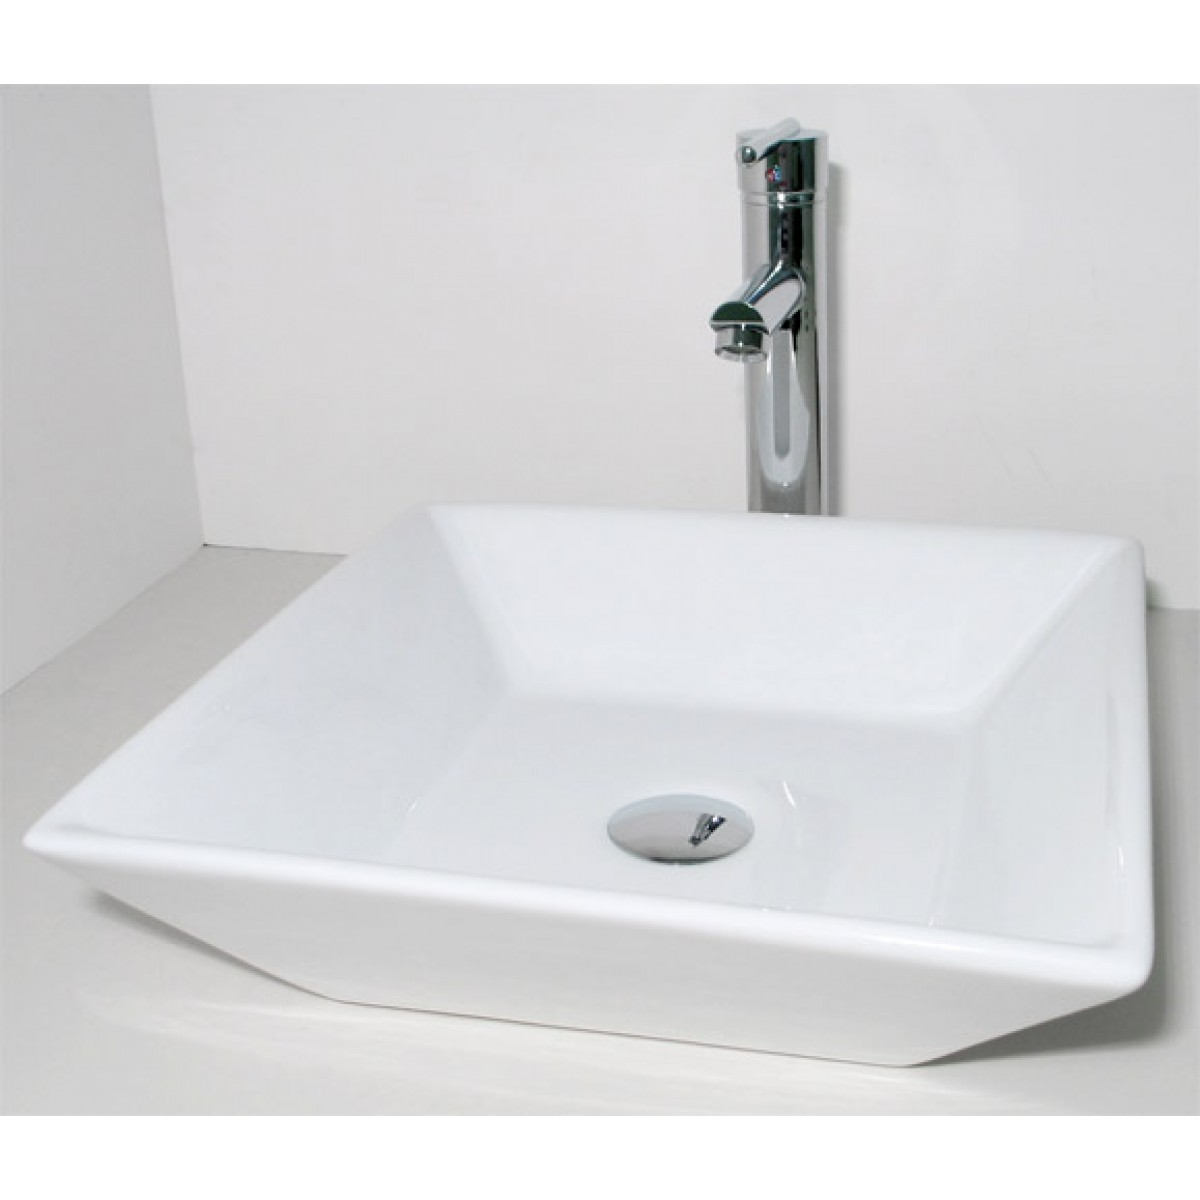 European Design Slope Wall Porcelain Ceramic Countertop Bathroom Vessel Sink - 16 x 16 x 4-1/2 Inch